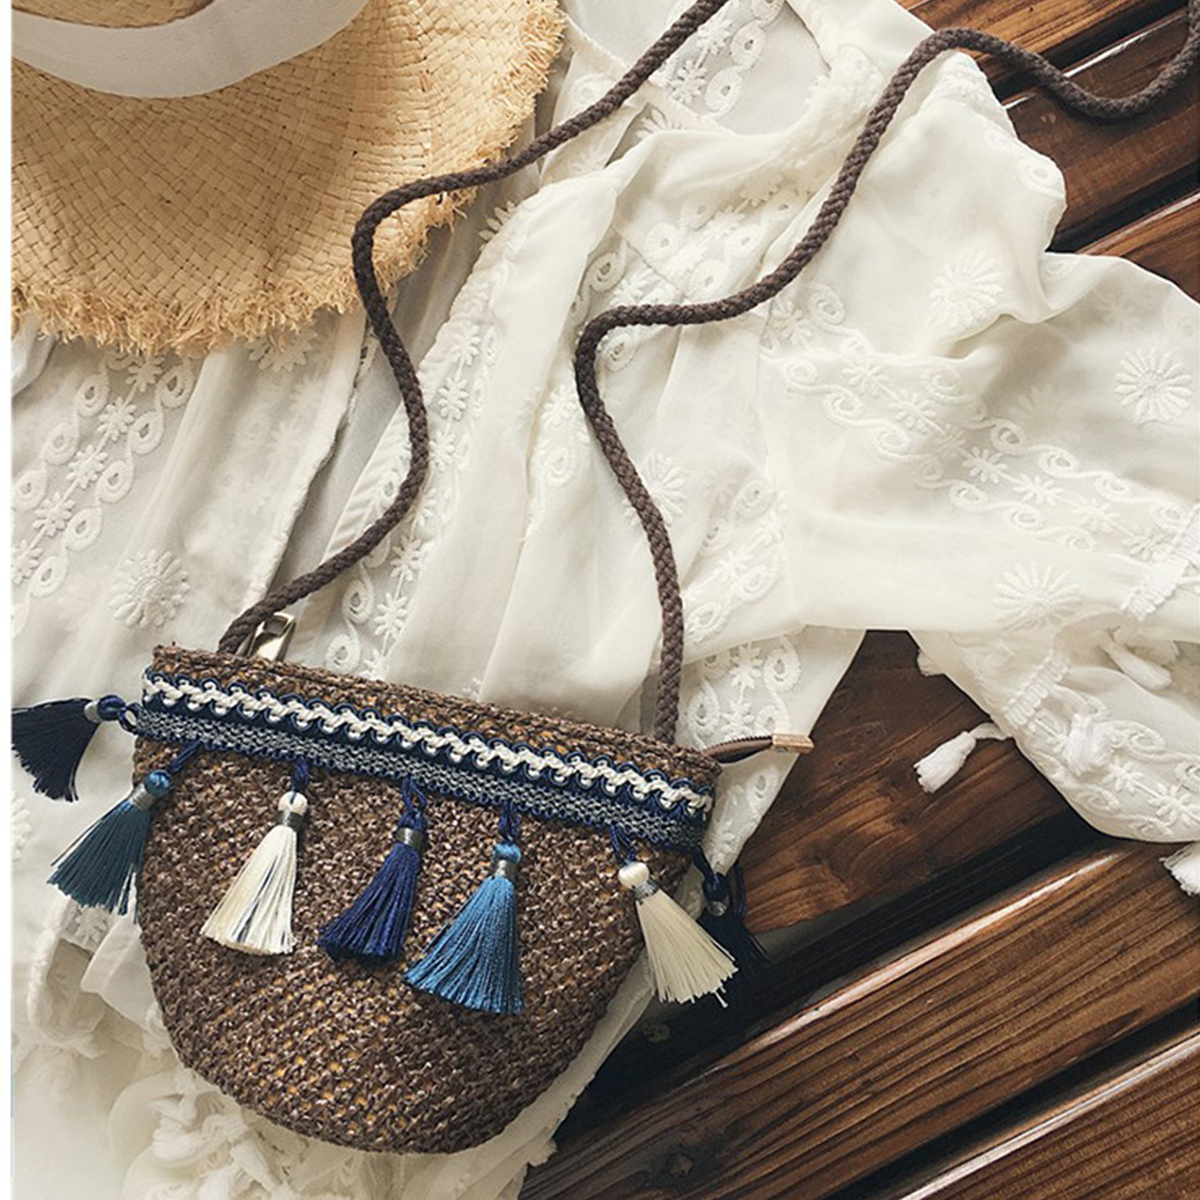 Retro Summer Beach Bag Handmade Tassel Braid Straw Small Tote Beach Shoulder Handbag Straw Bag Women Beach Bags beach straw bags women appliques beach bag snakeskin handbags summer 2017 vintage python pattern crossbody bag